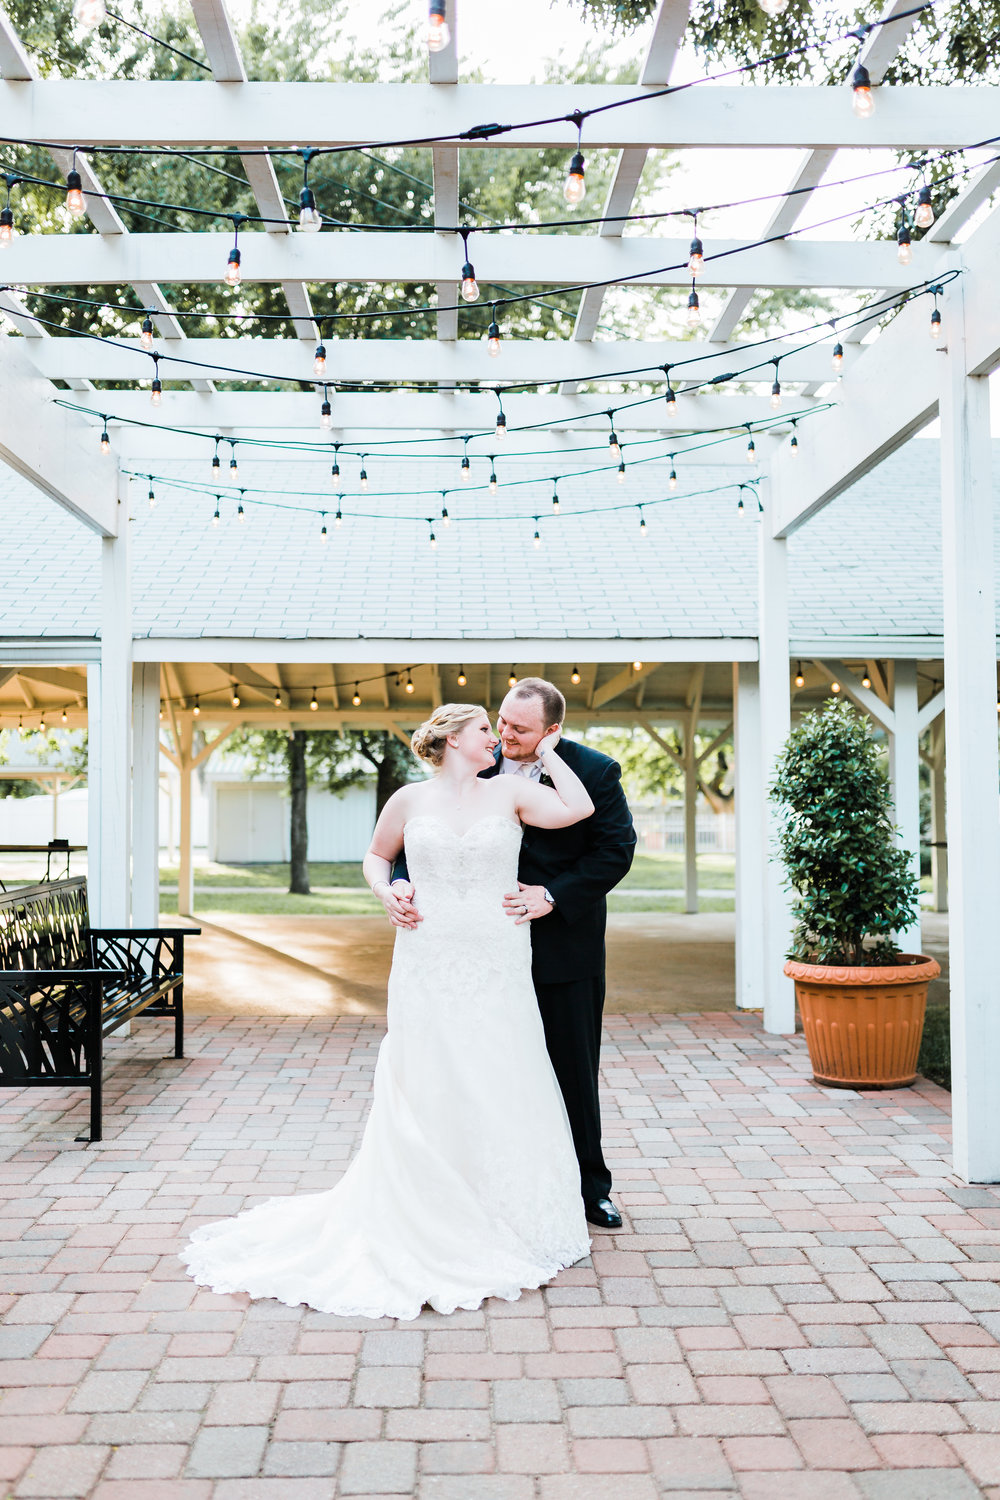 wedding venues with string lights - waterfront wedding venues in maryland - top md wedding photo and video